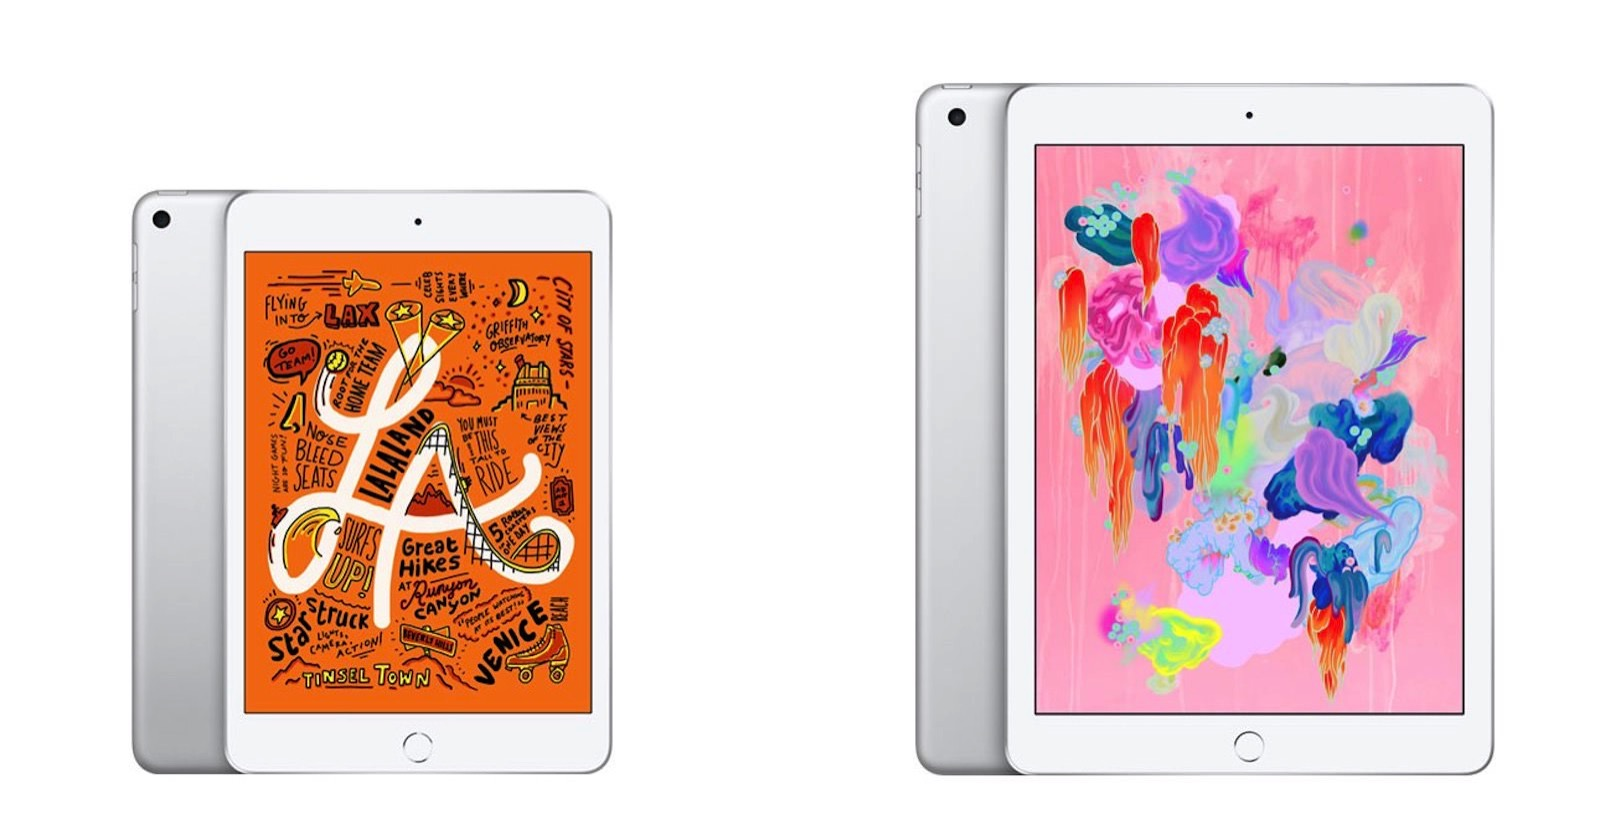 Ipad mini ipad comparison